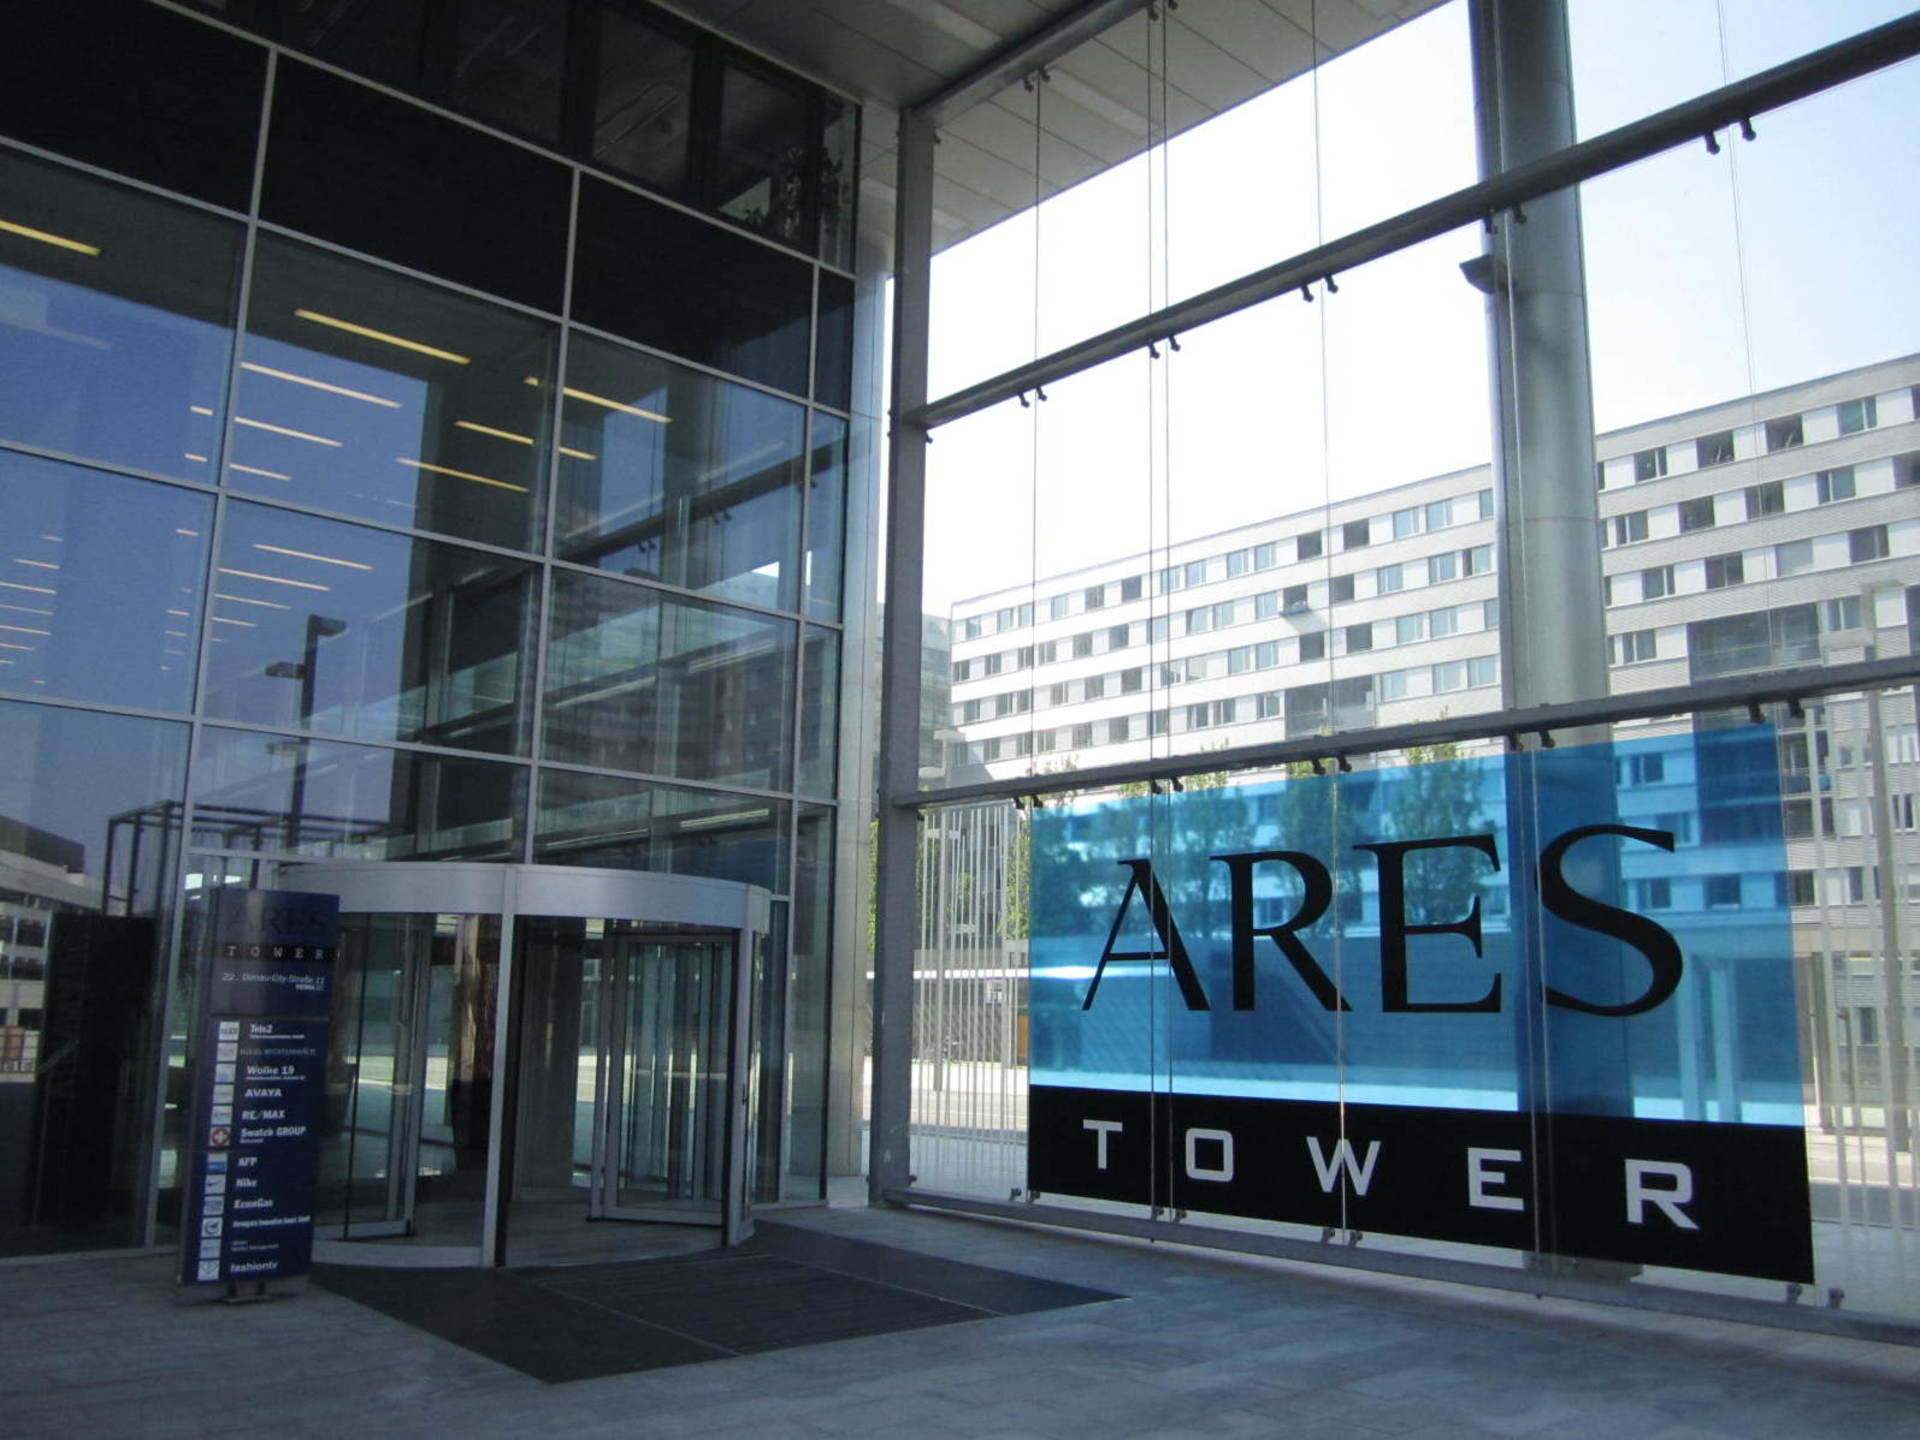 Ares Tower - Donau-City-Straße 11, 1220 Vienna